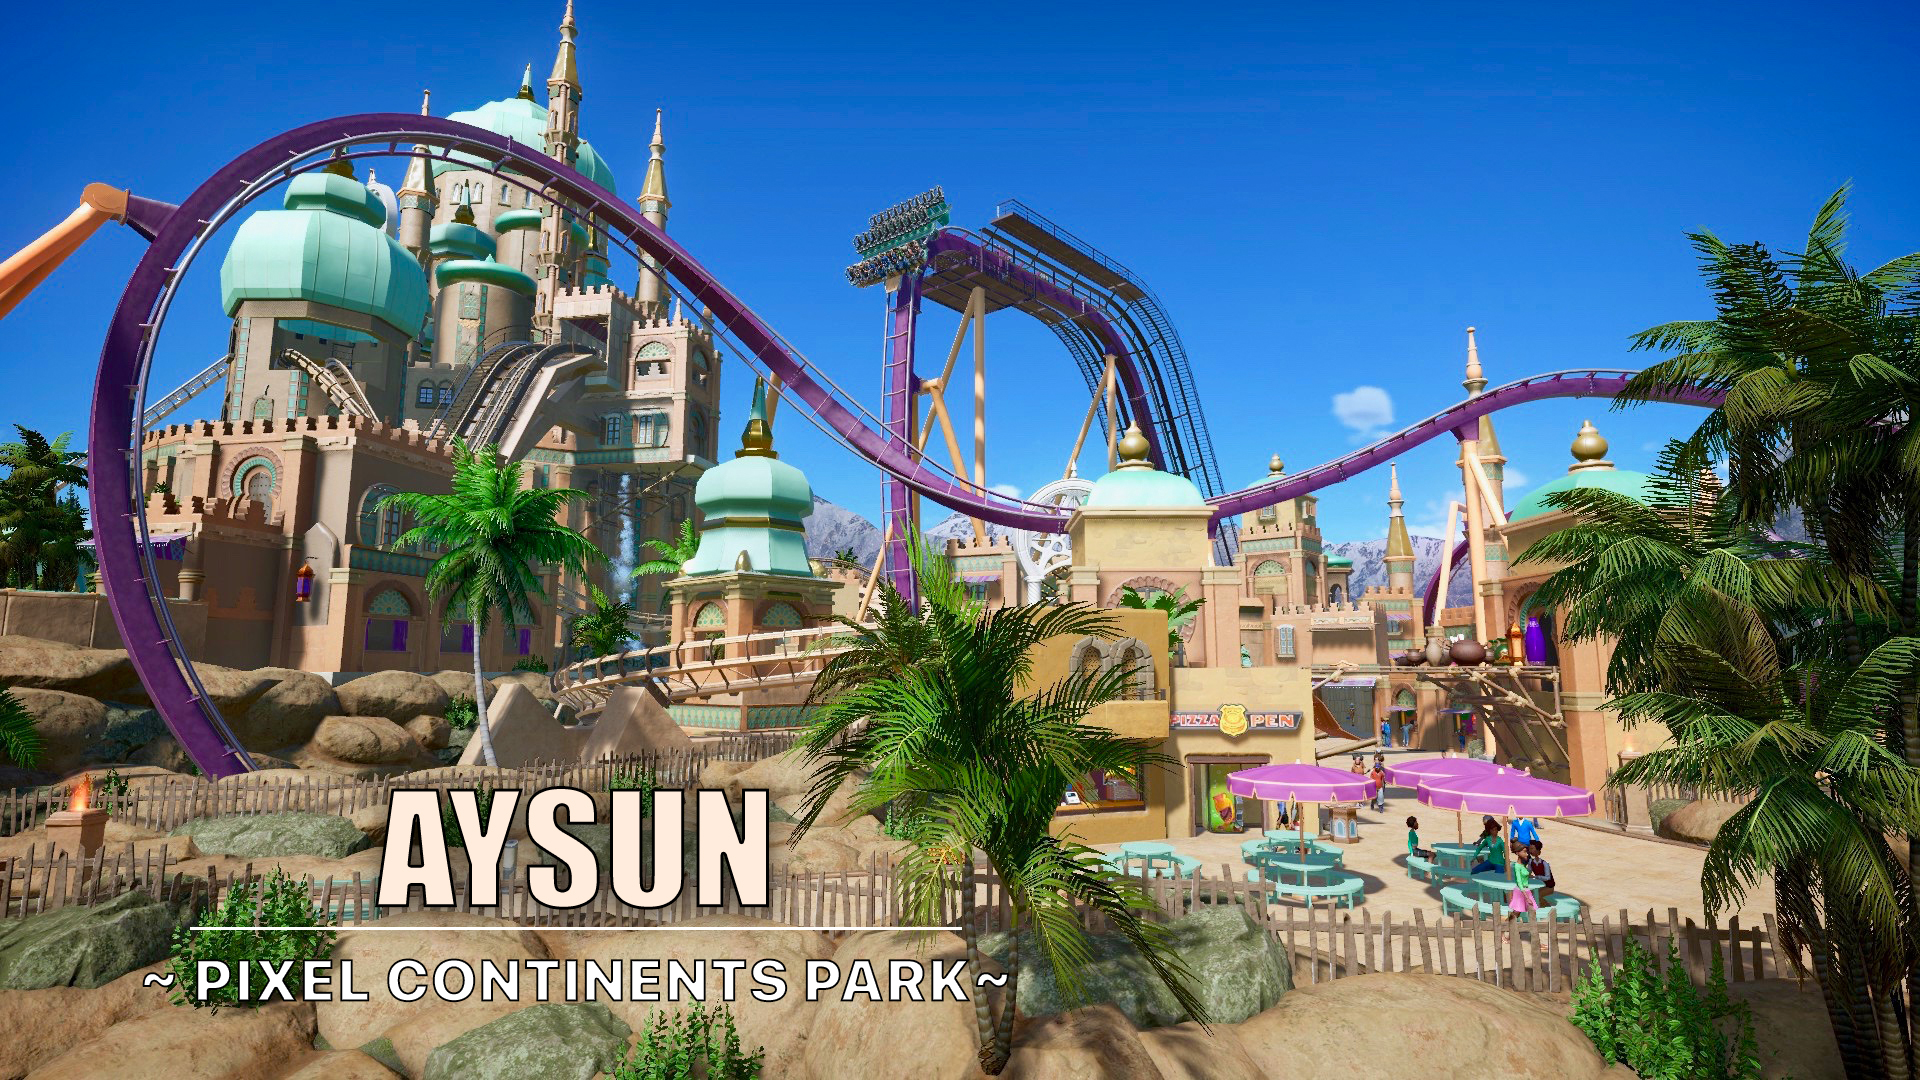 Aysun is a short dive coaster in the middle of an Arabic area.